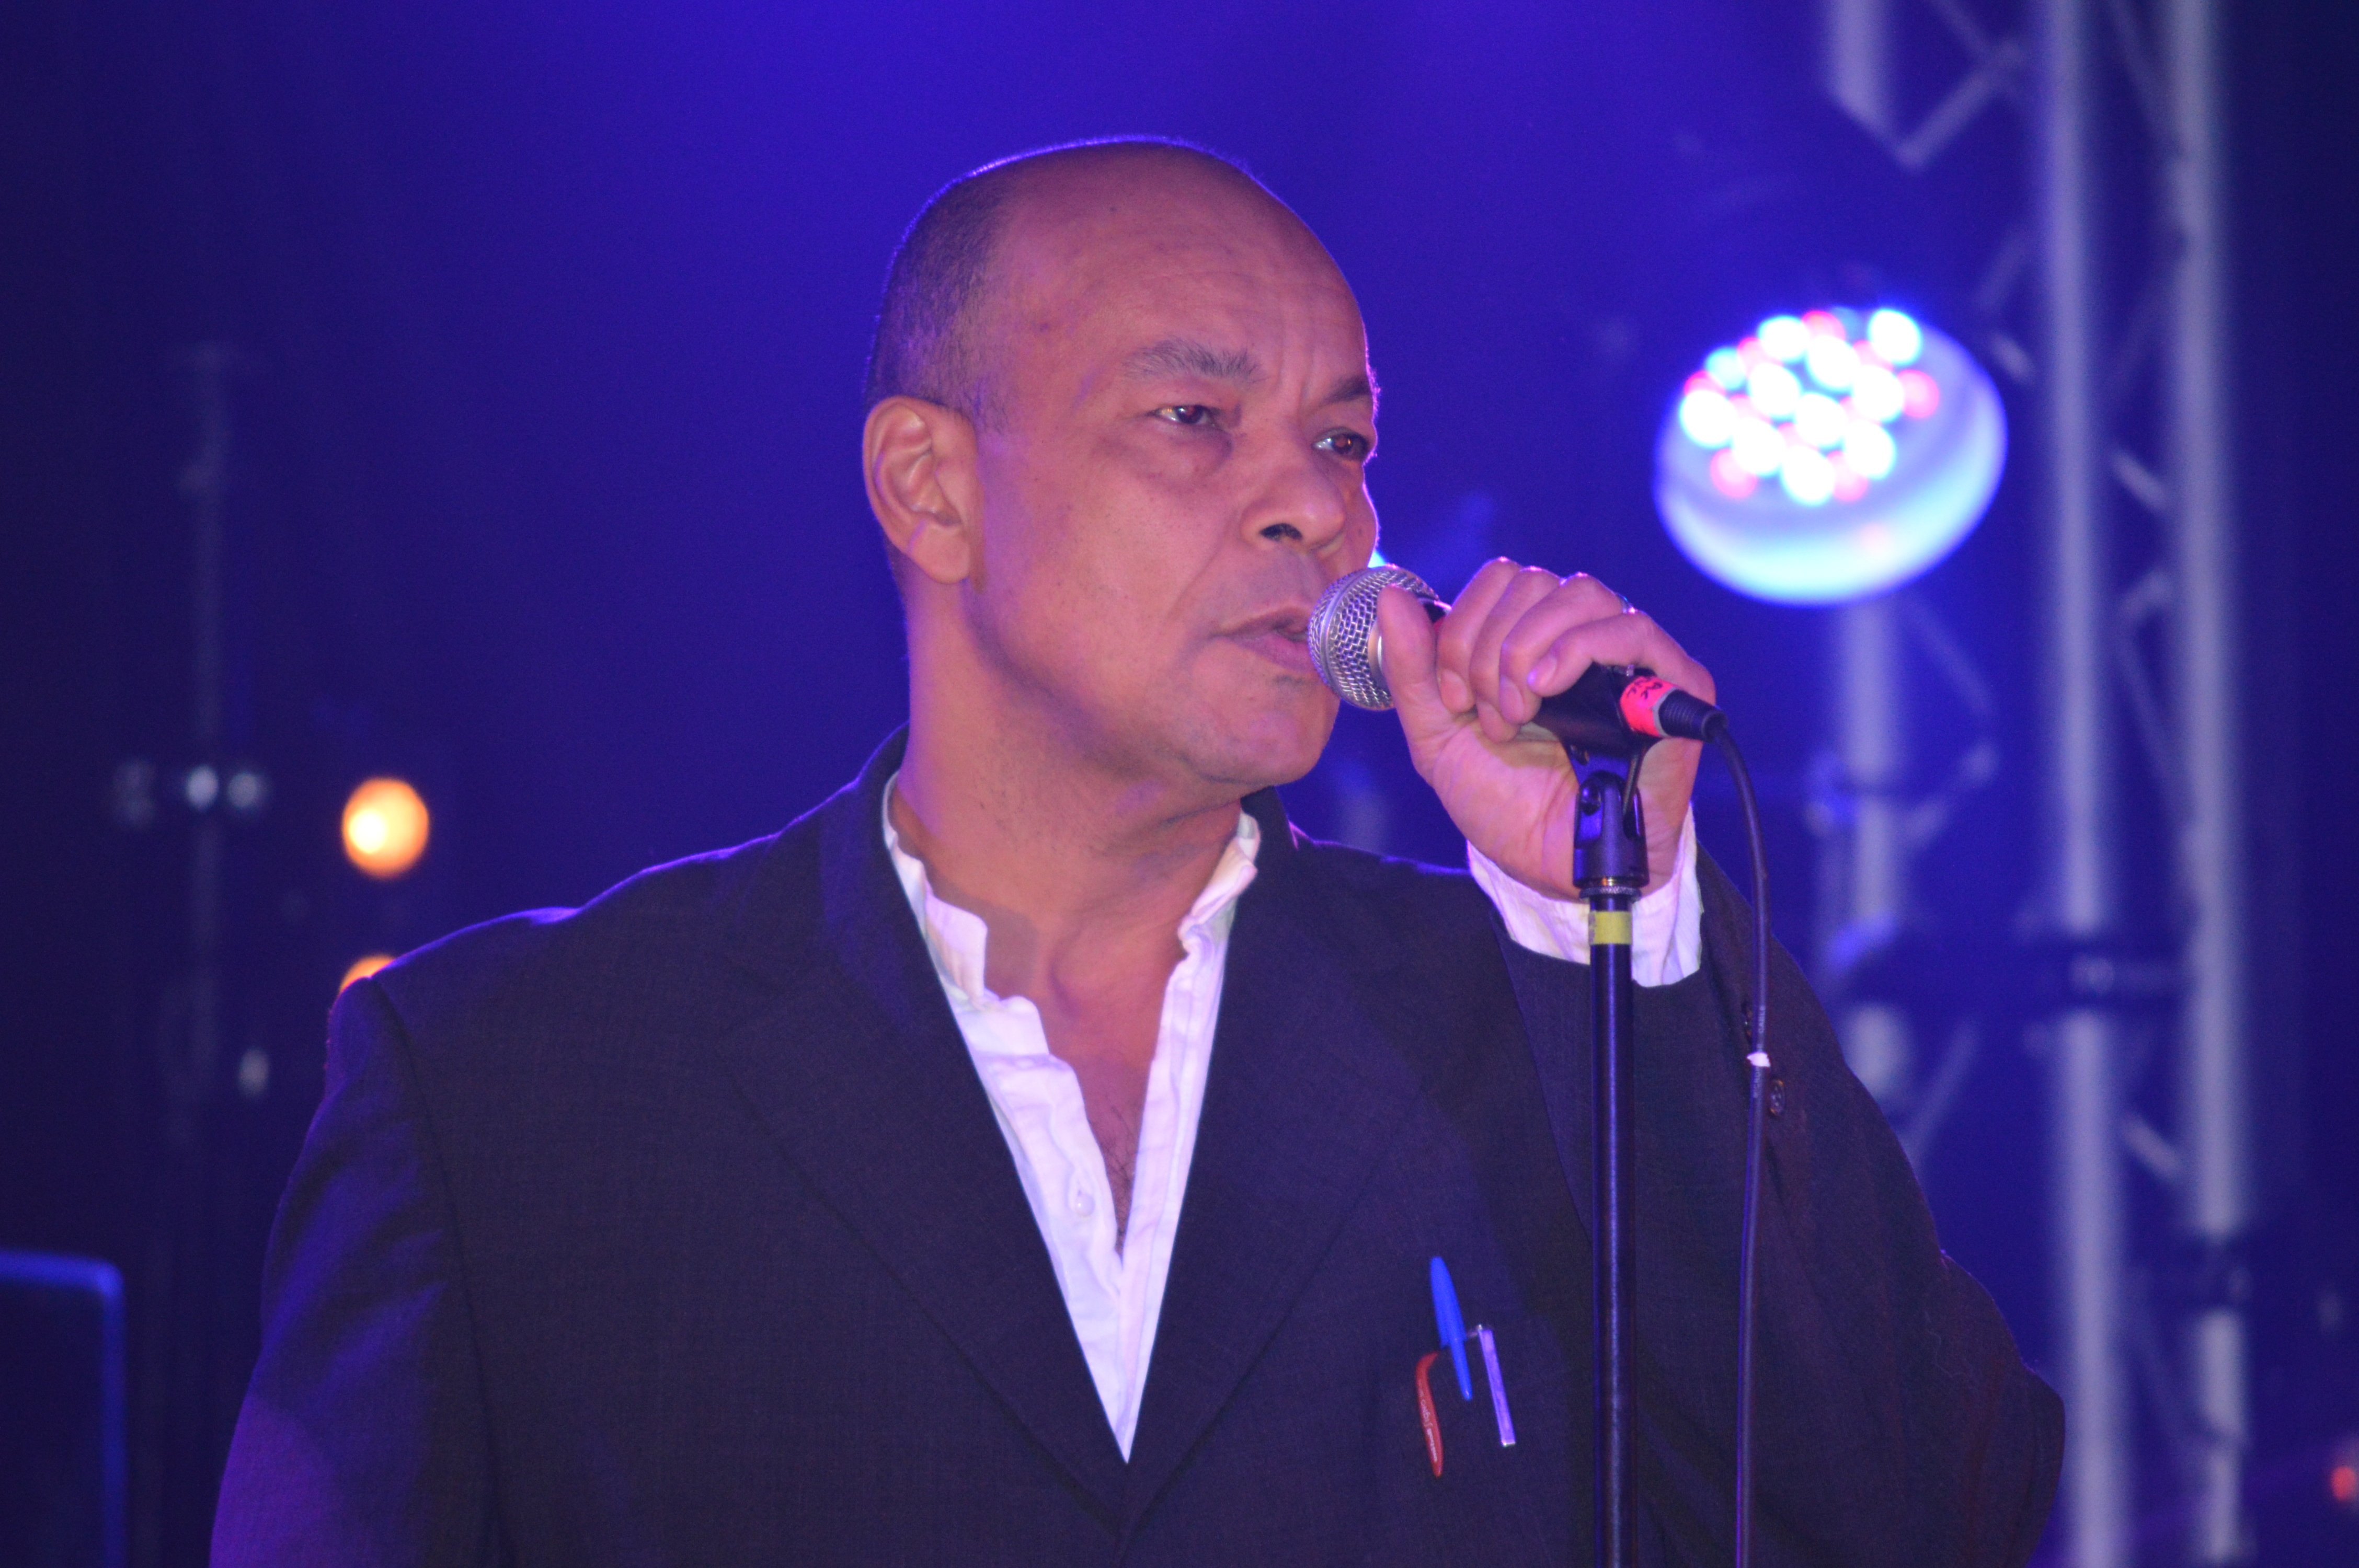 Roland gift concorde 2 brighton thurs 14th dec 2017 get out its not surprising that his fine young cannibals material gets the greatest response they kick off with suspicious minds gifts distinctive voice negle Image collections